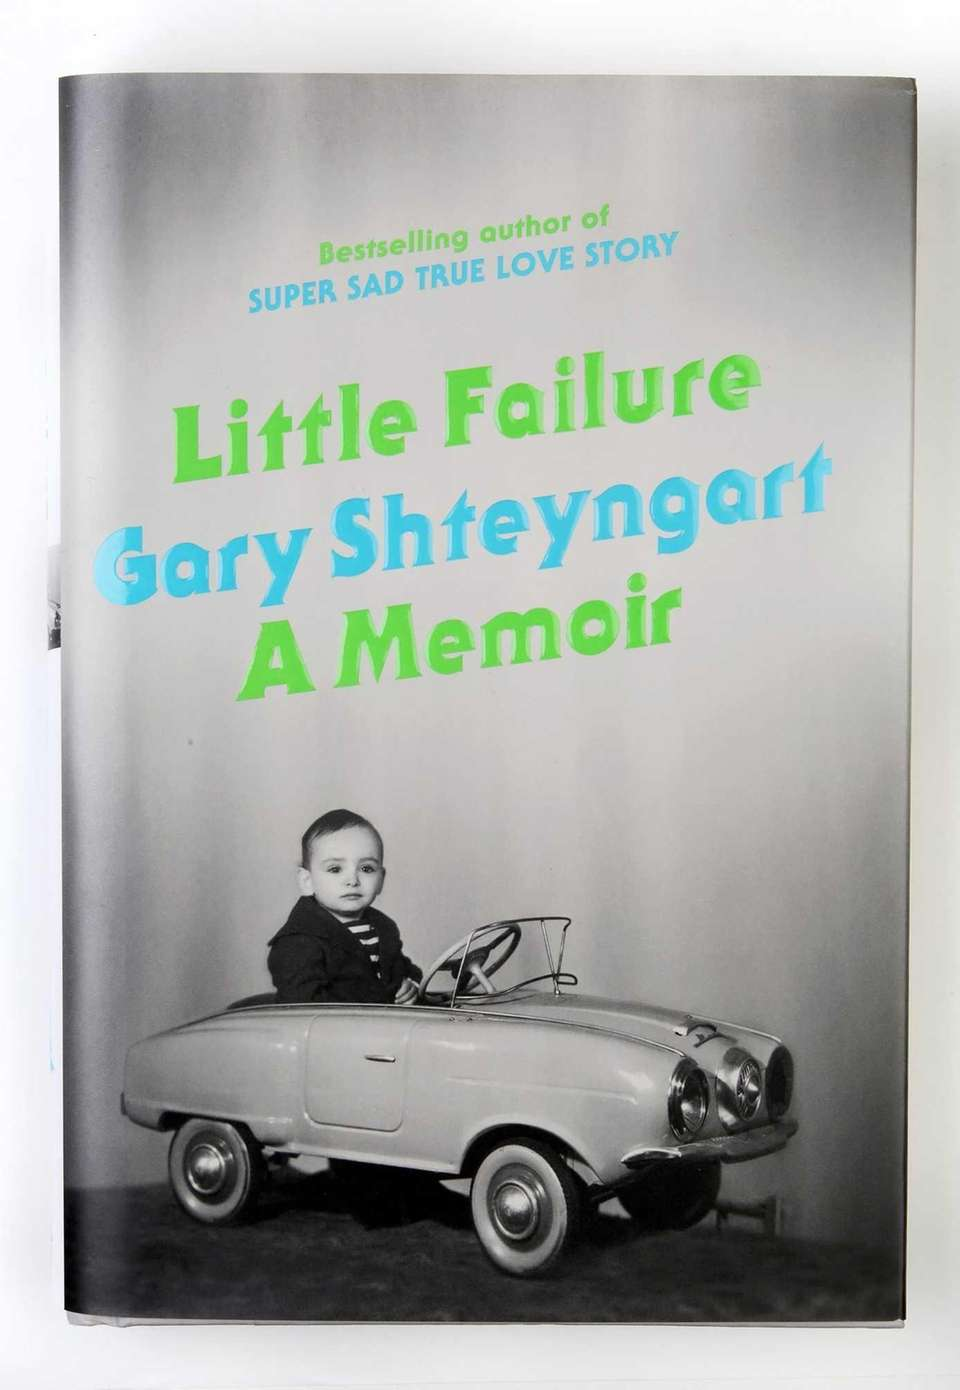 Gary Shteyngart's raw, big-hearted memoir